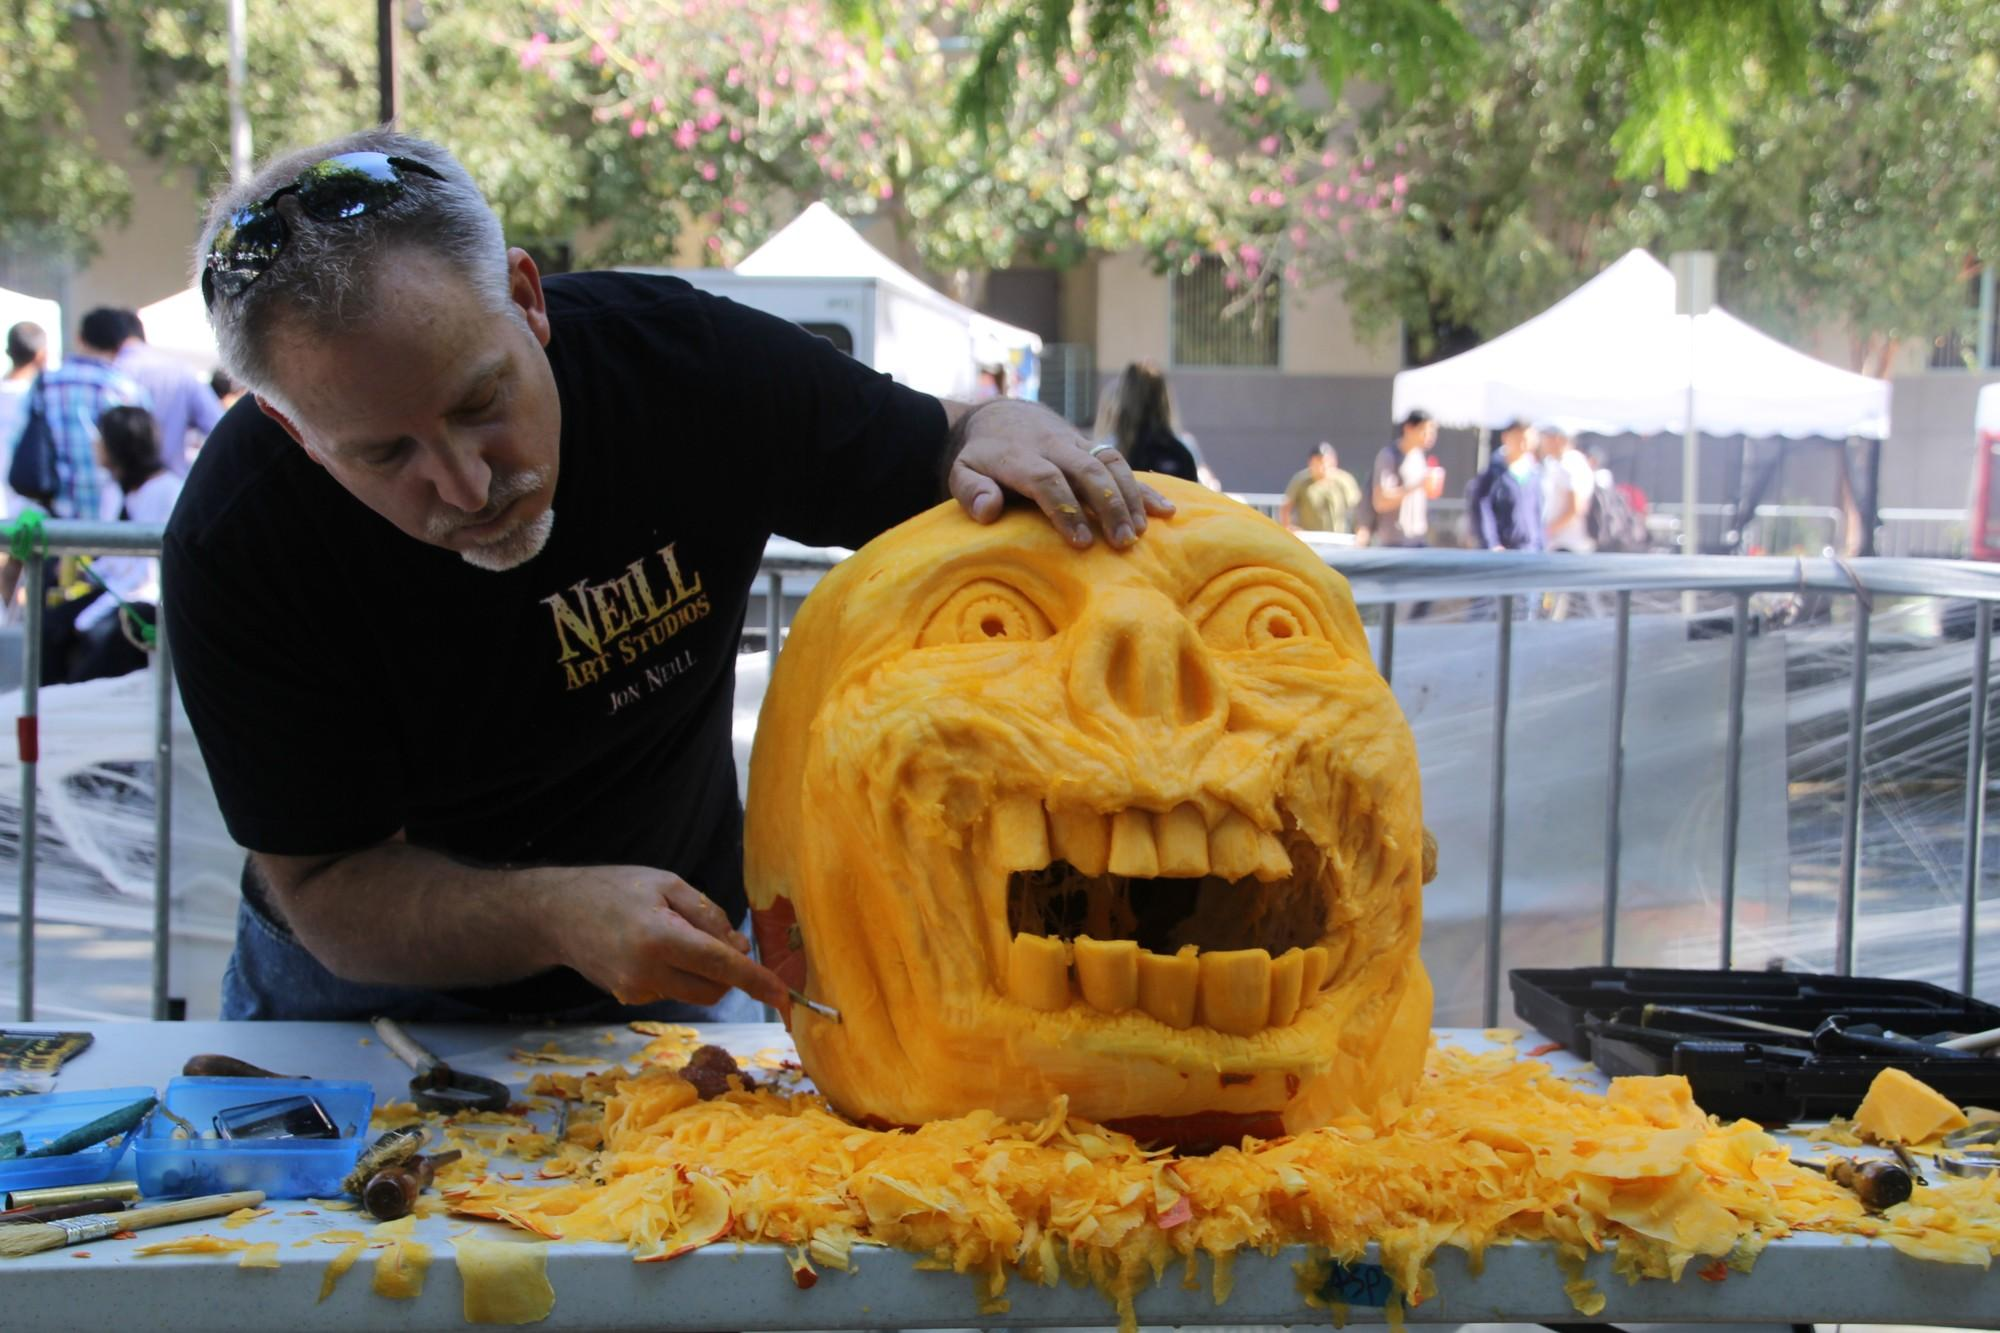 Man carves pumpkin in shape of a monster's face